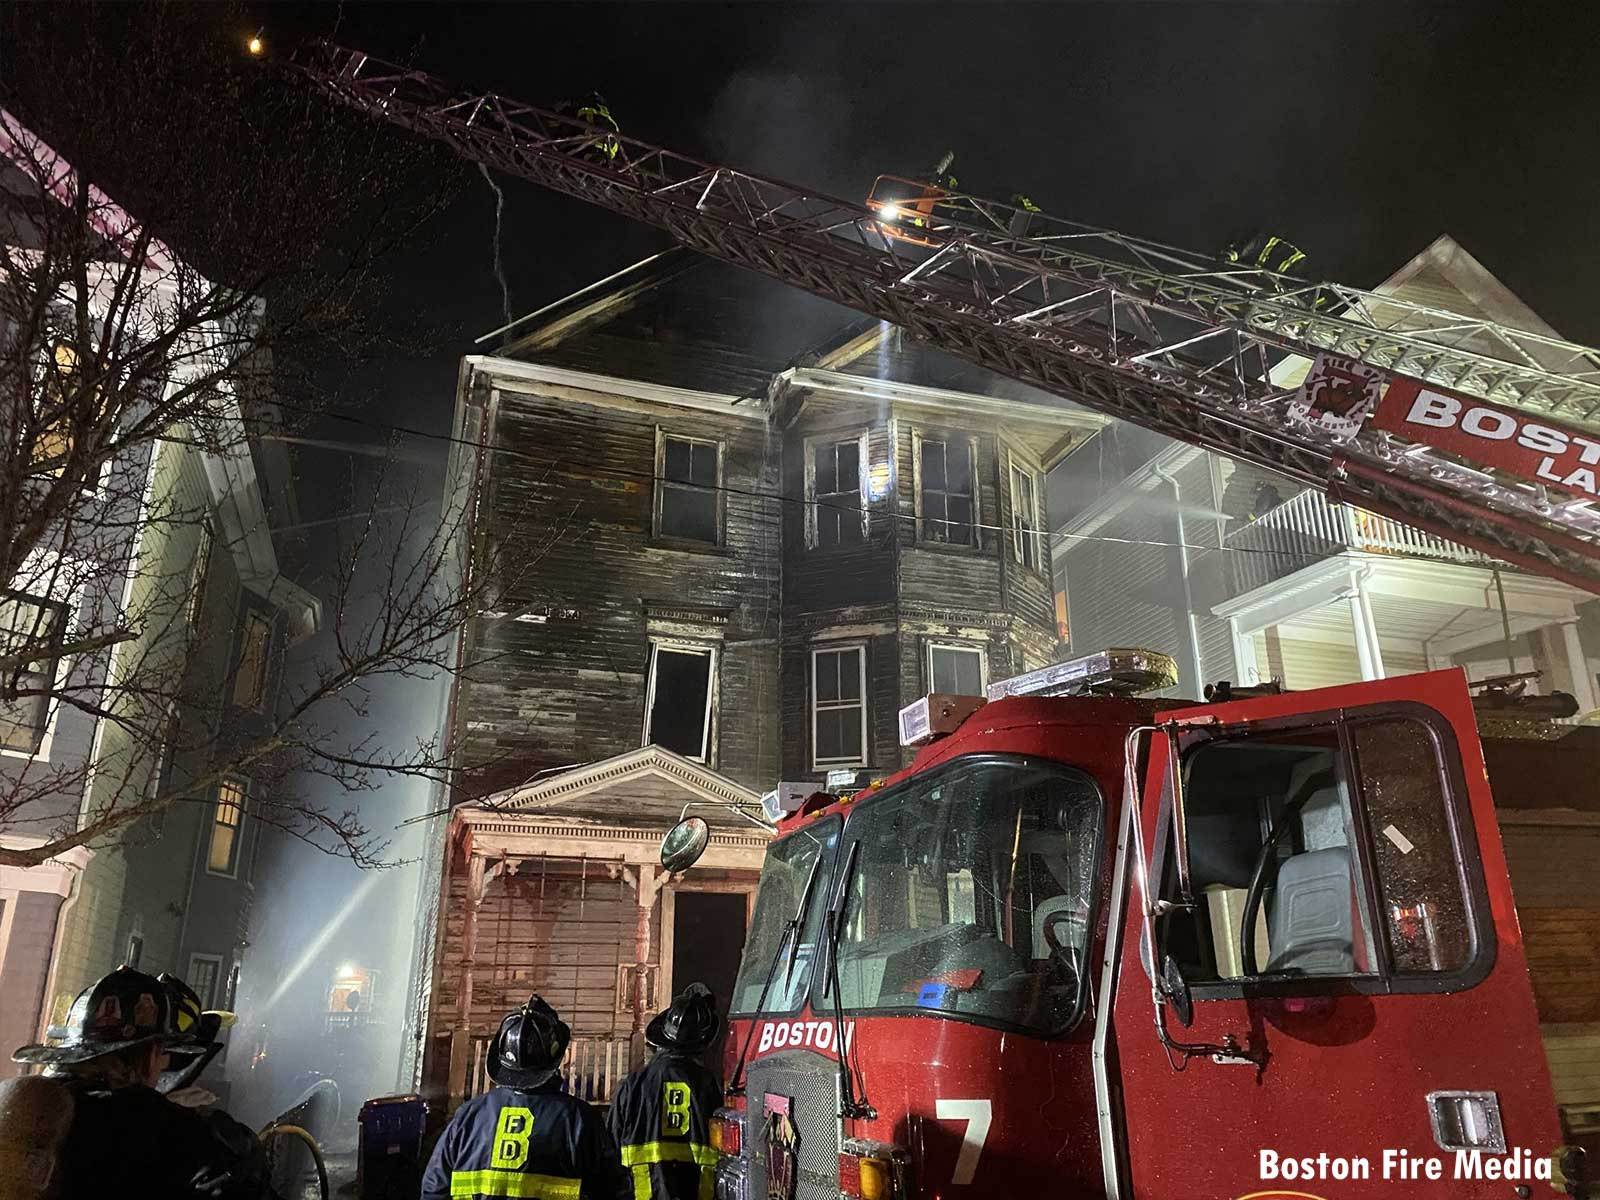 A view of the damage at the second fire in Dorchester